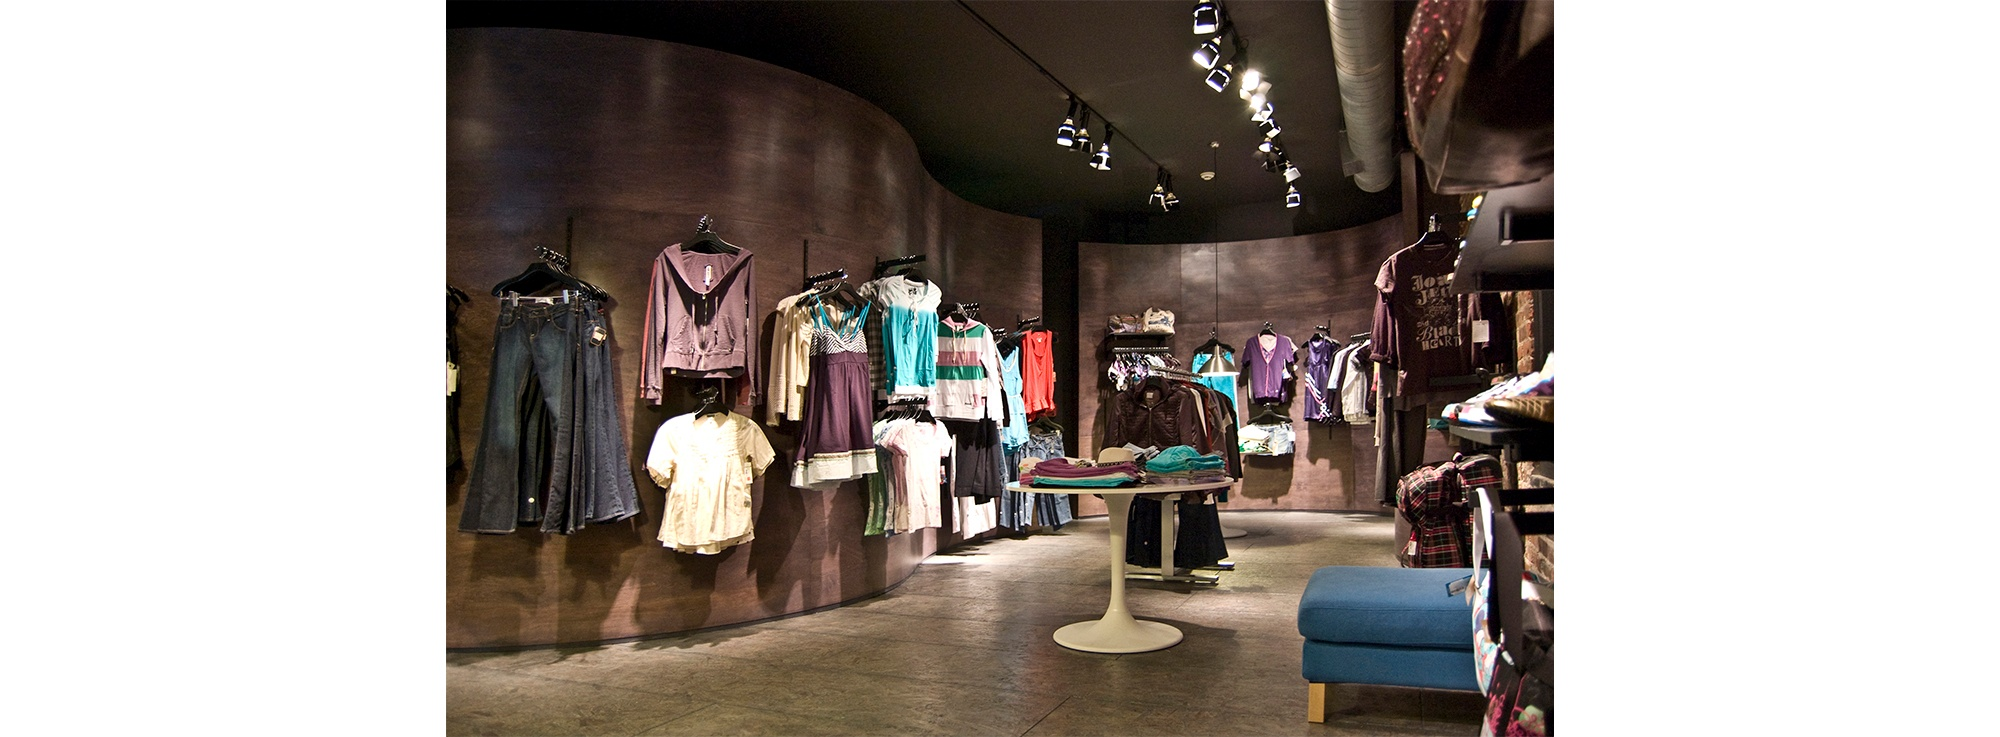 Urban Clothing and Skate Shop